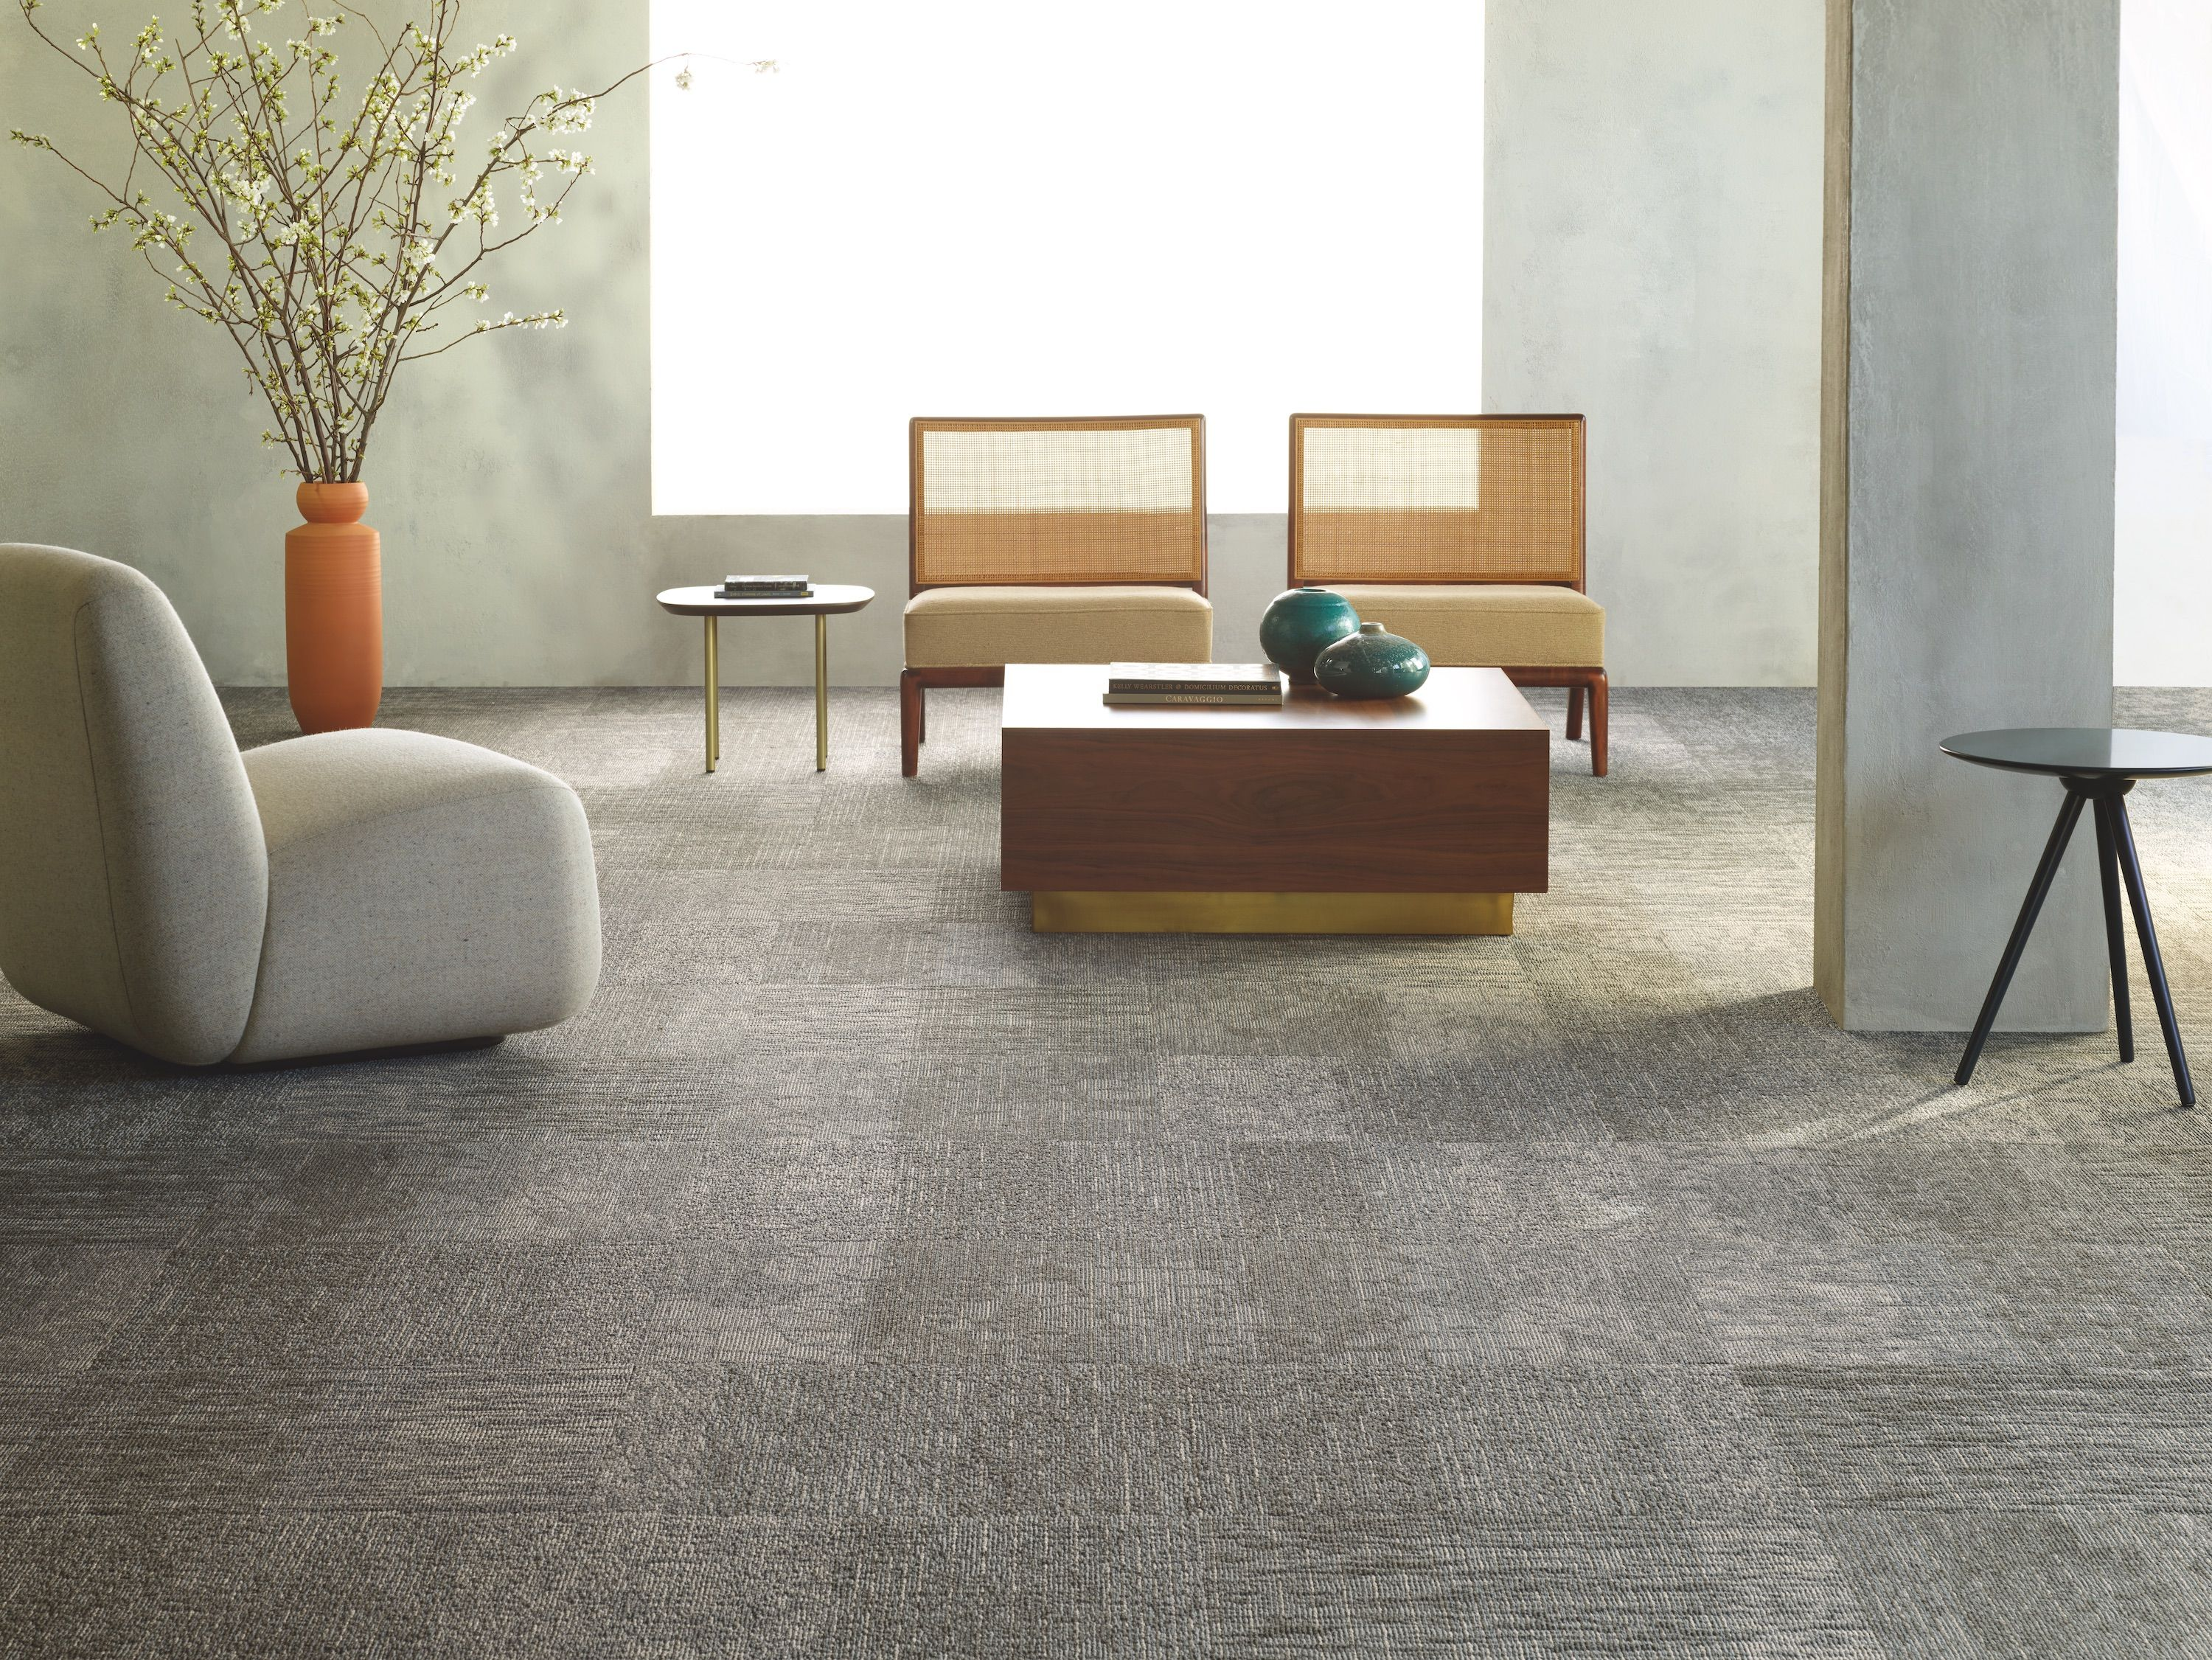 Simply By Nature Carpet Tiles Living Room Flooring Earth Tone